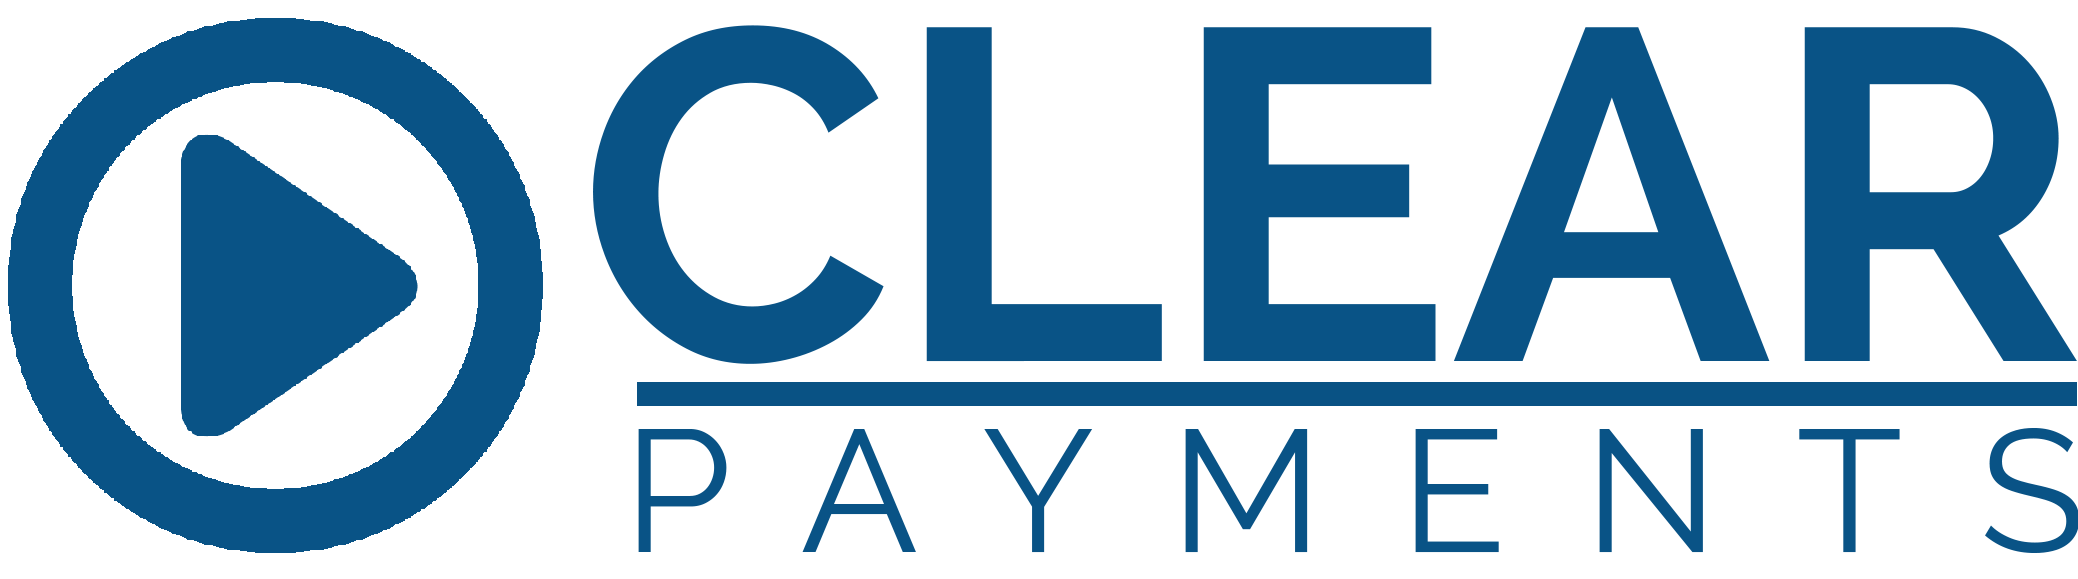 ClearPaymentSolution Logo